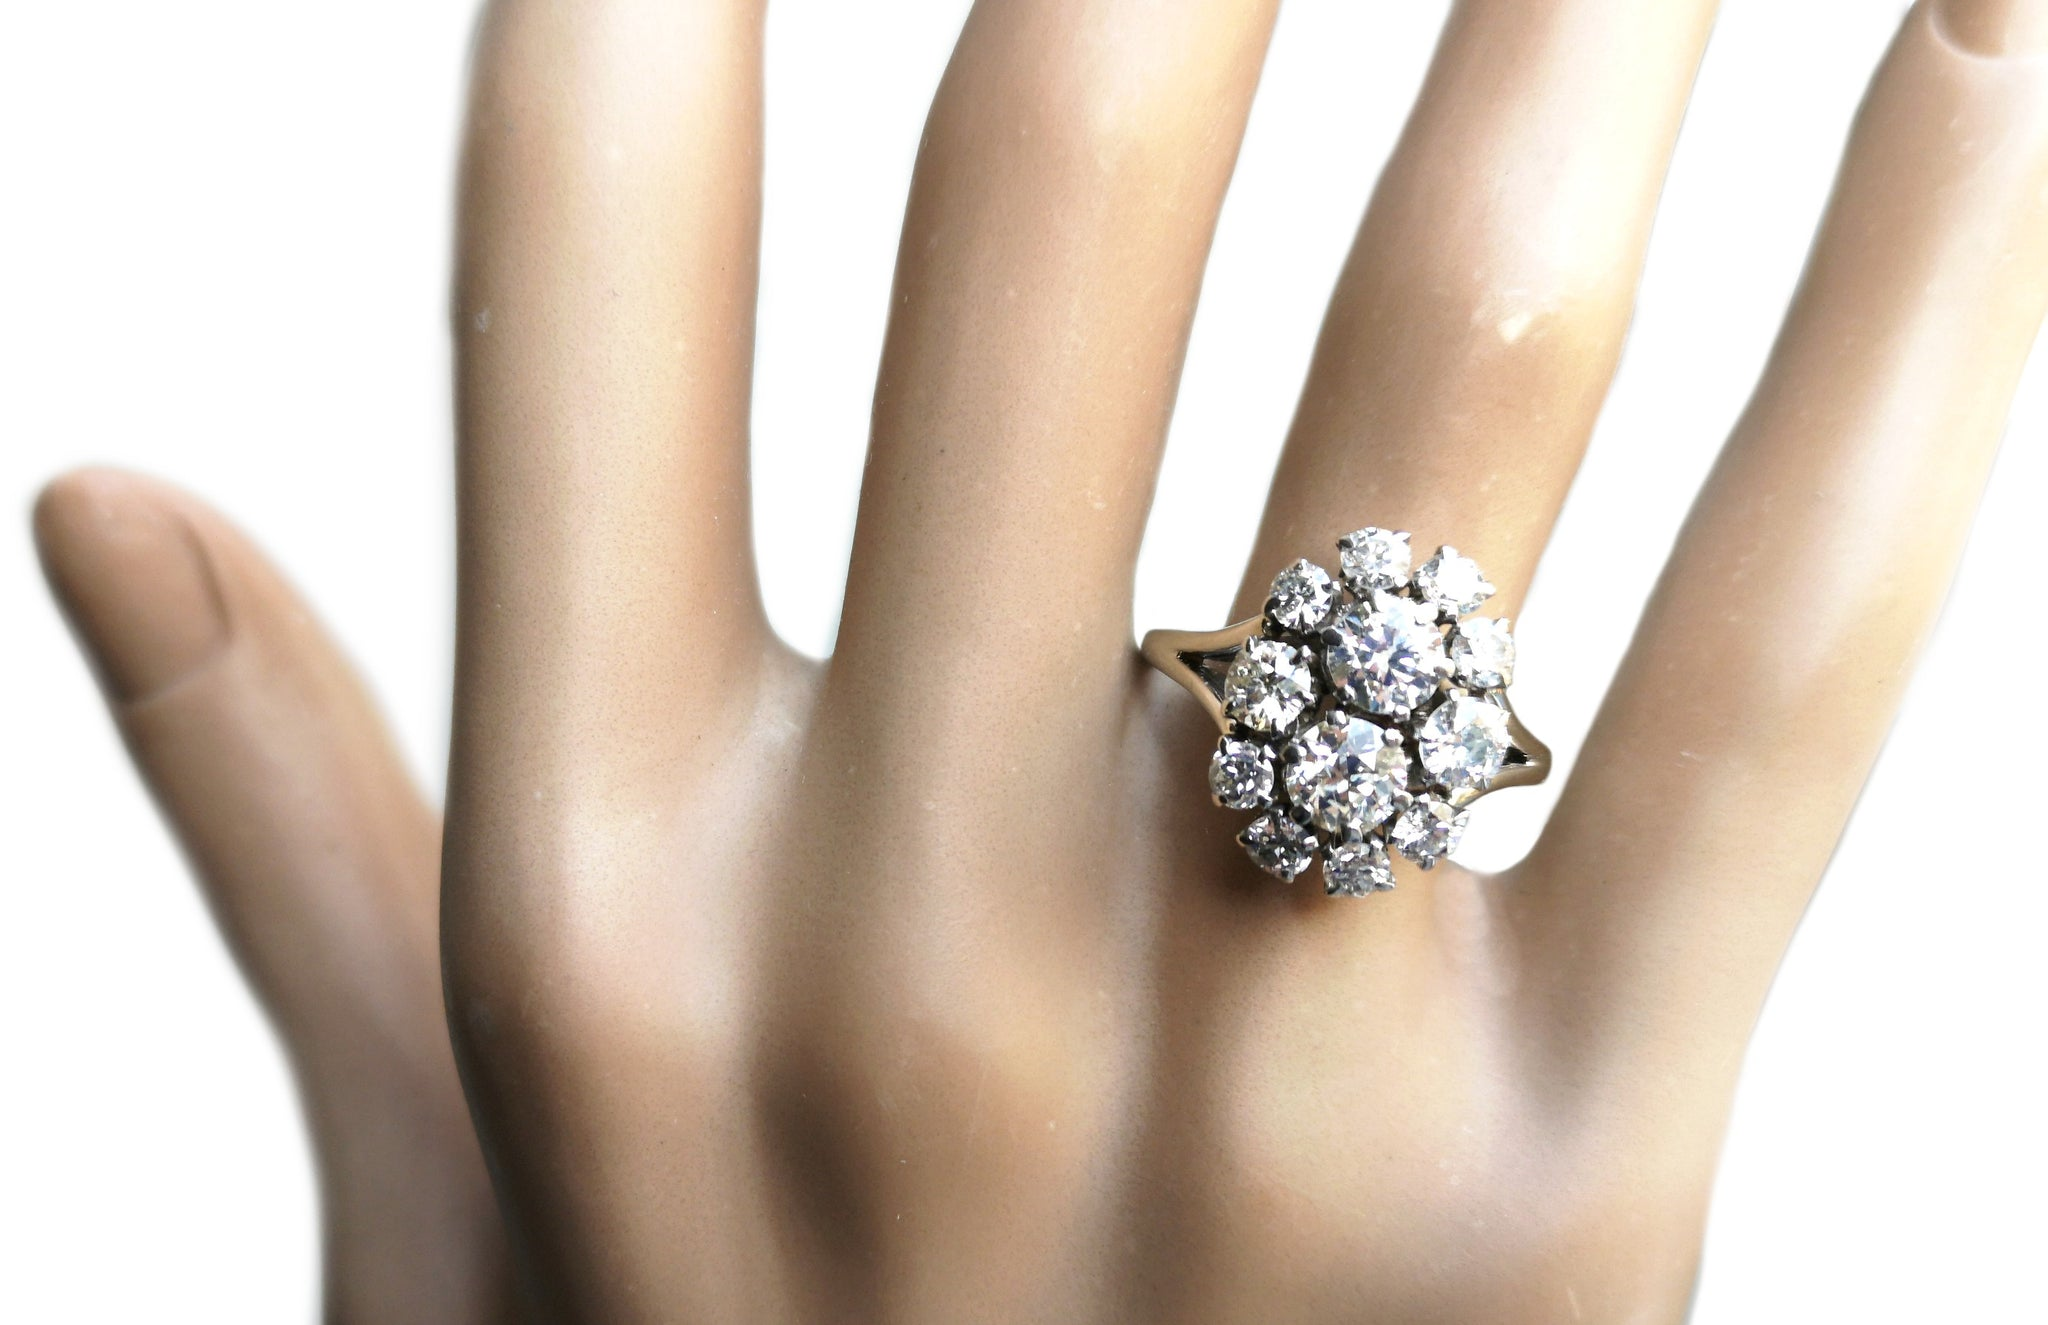 French Mid Century 1950s 2.10tcw G/VS Old/Transitional Cut Diamond Cluster Engagement Ring